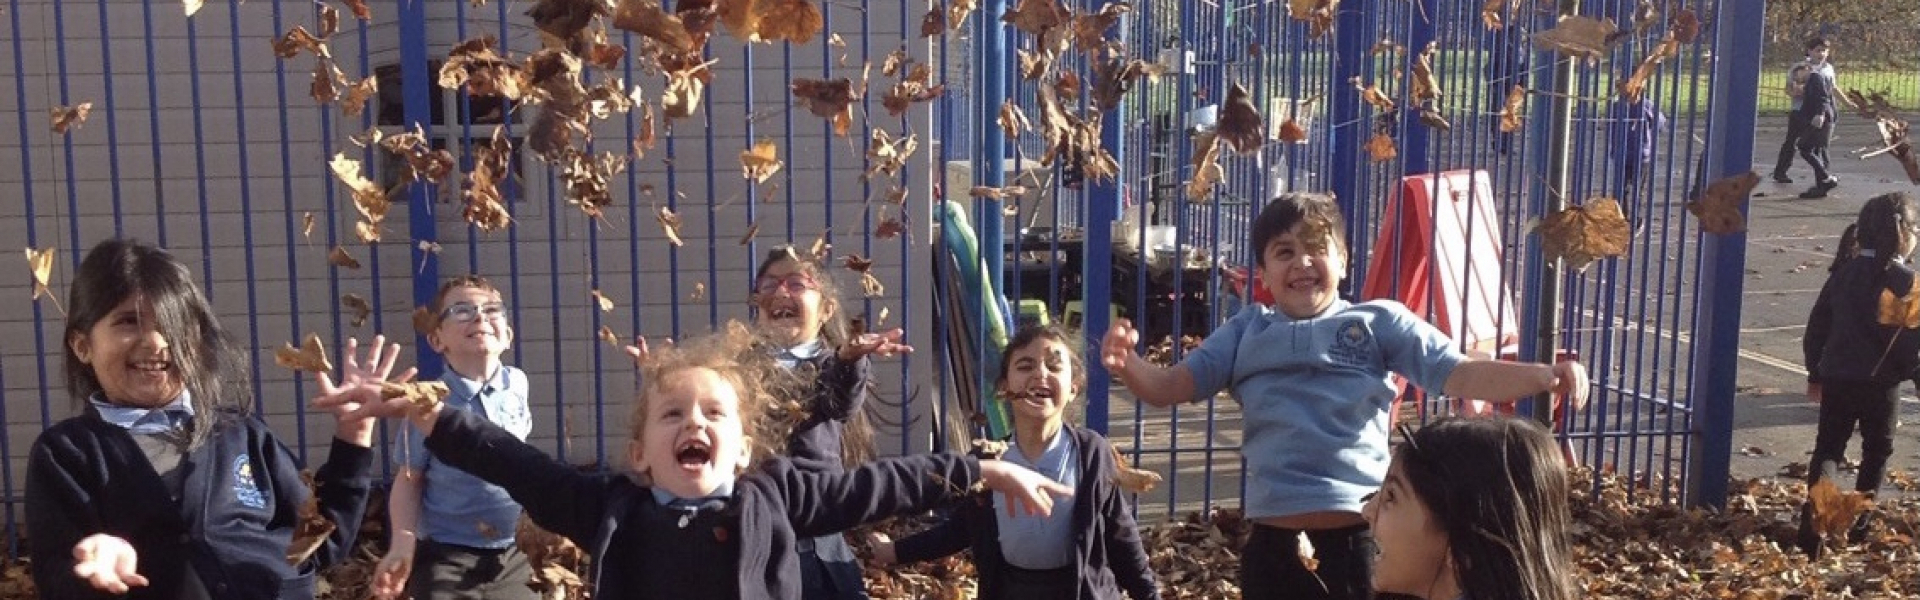 Y2 autumn fun